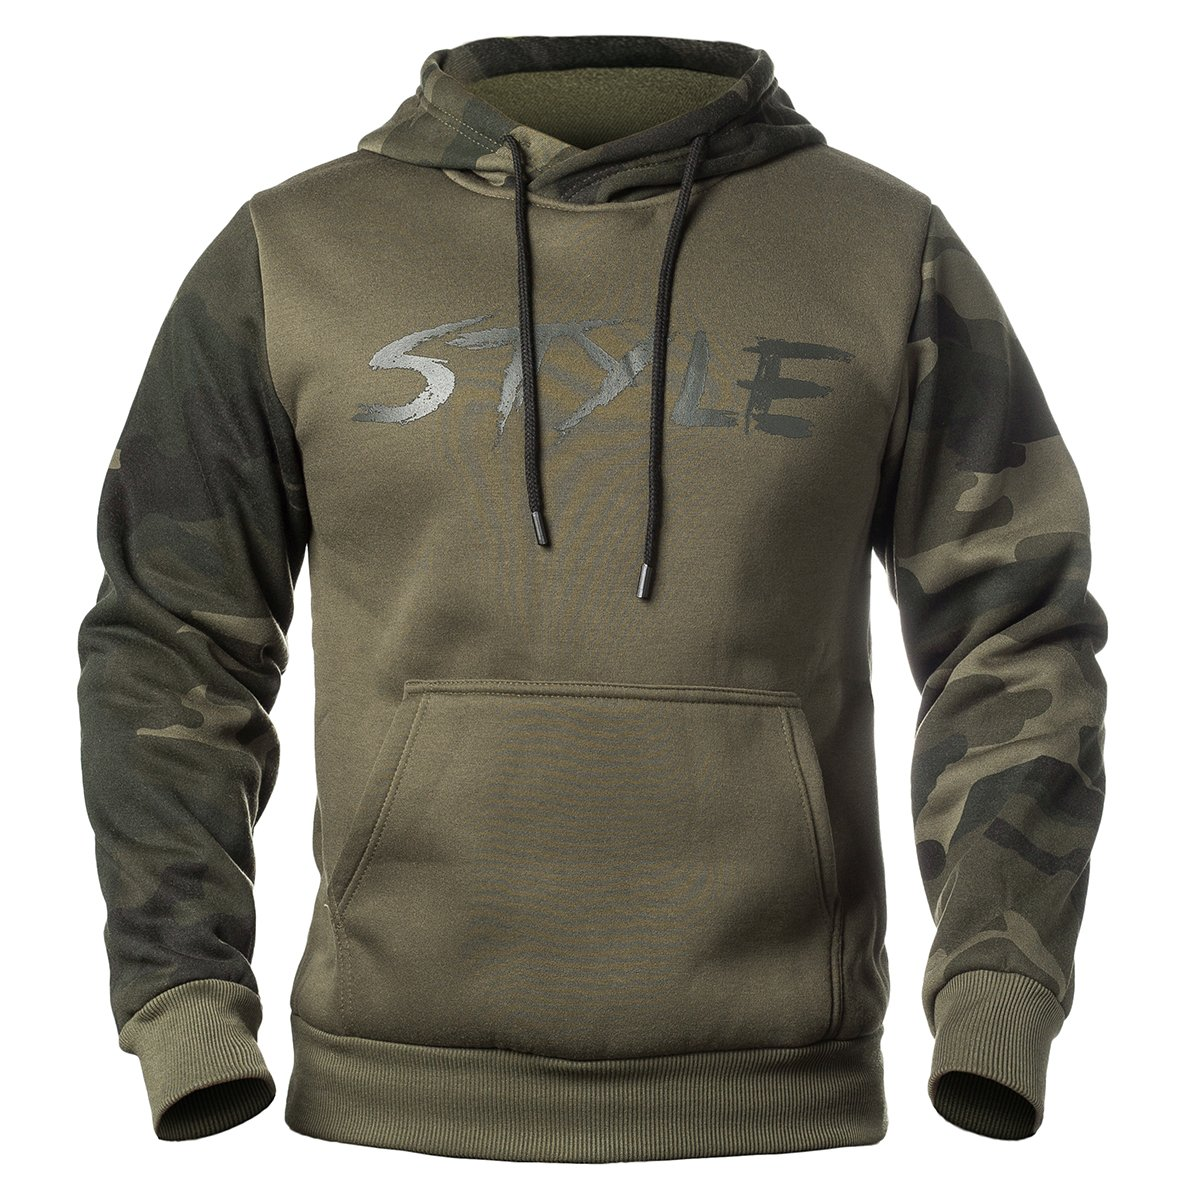 ReFire Gear Mens Lightweight Camouflage Pullover Fleece Hoodie Casual Drawstring Hooded Sweatshirt